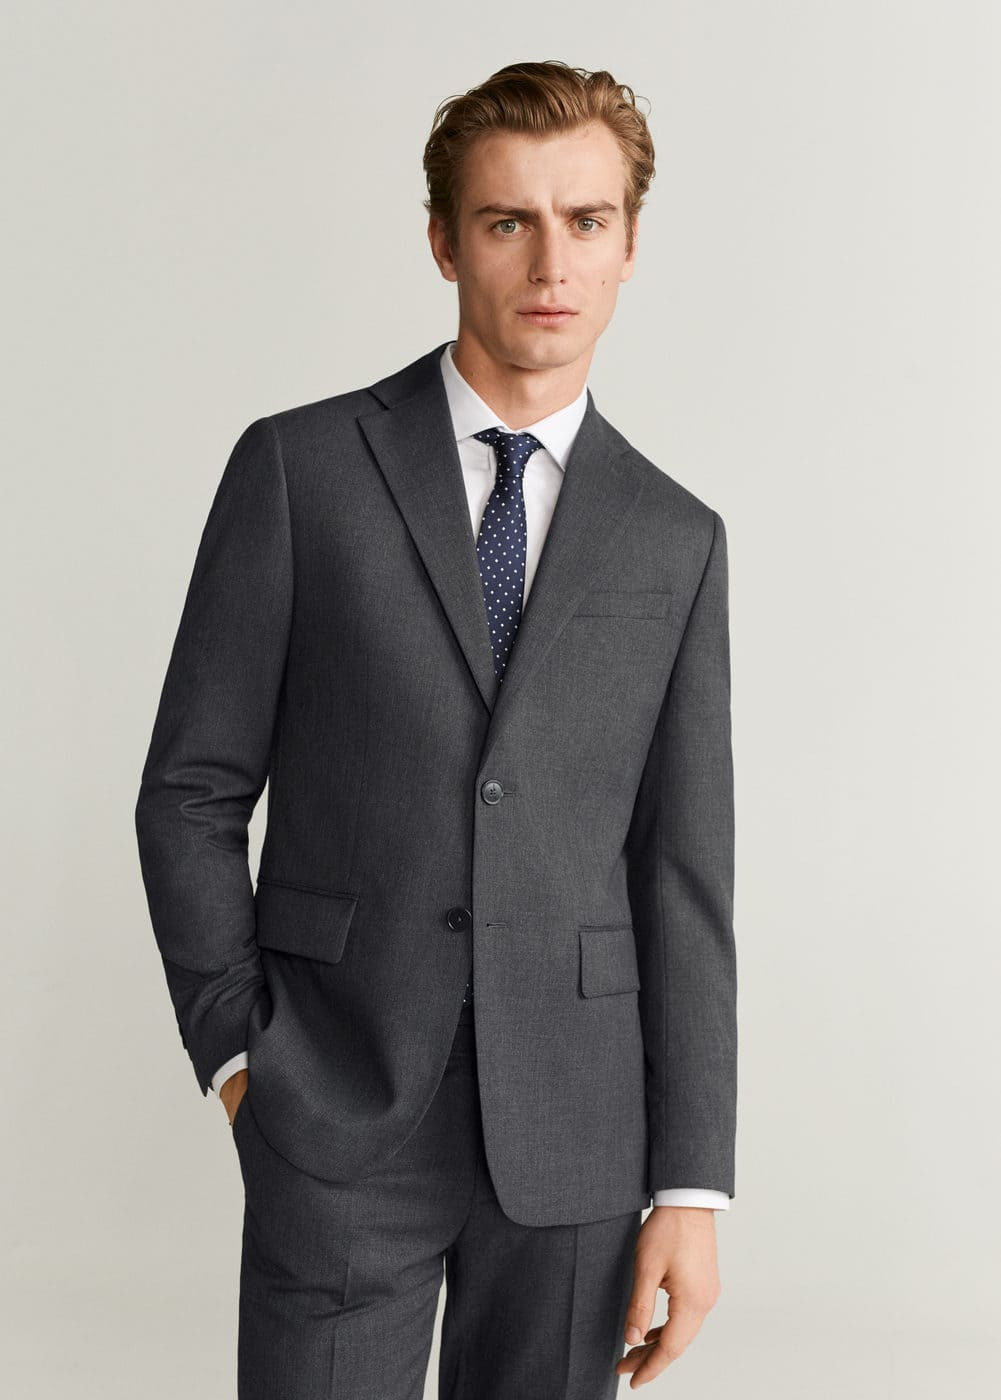 Regular Fit Microstructure Suit Blazer by Mango